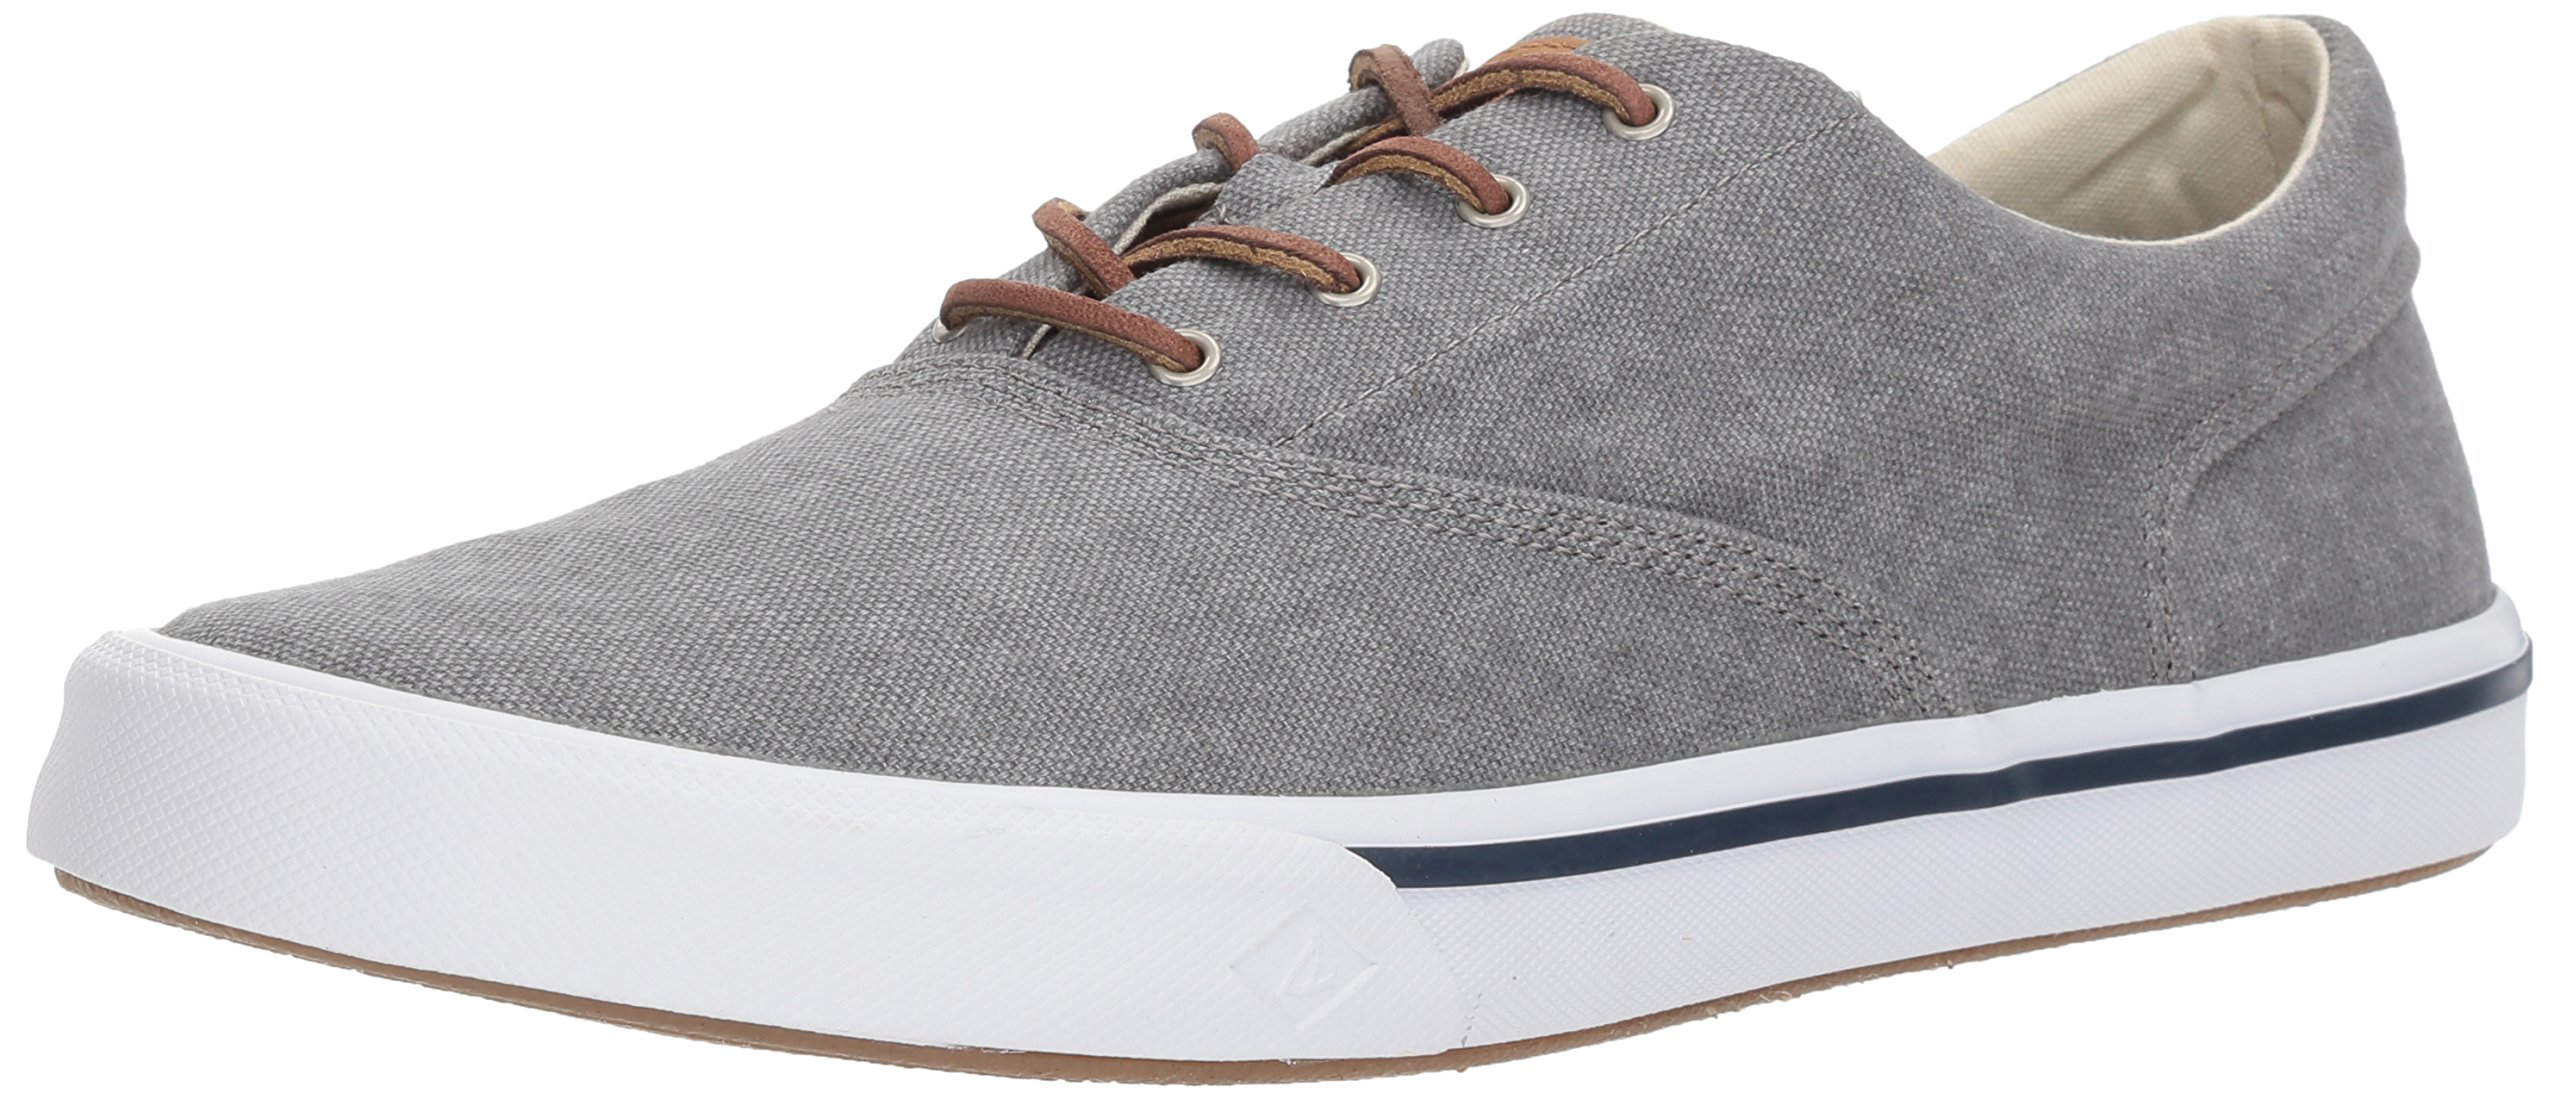 d5a3c4cb4b87 Sperry Top-Sider Men s Striper II CVO Washed Sneaker